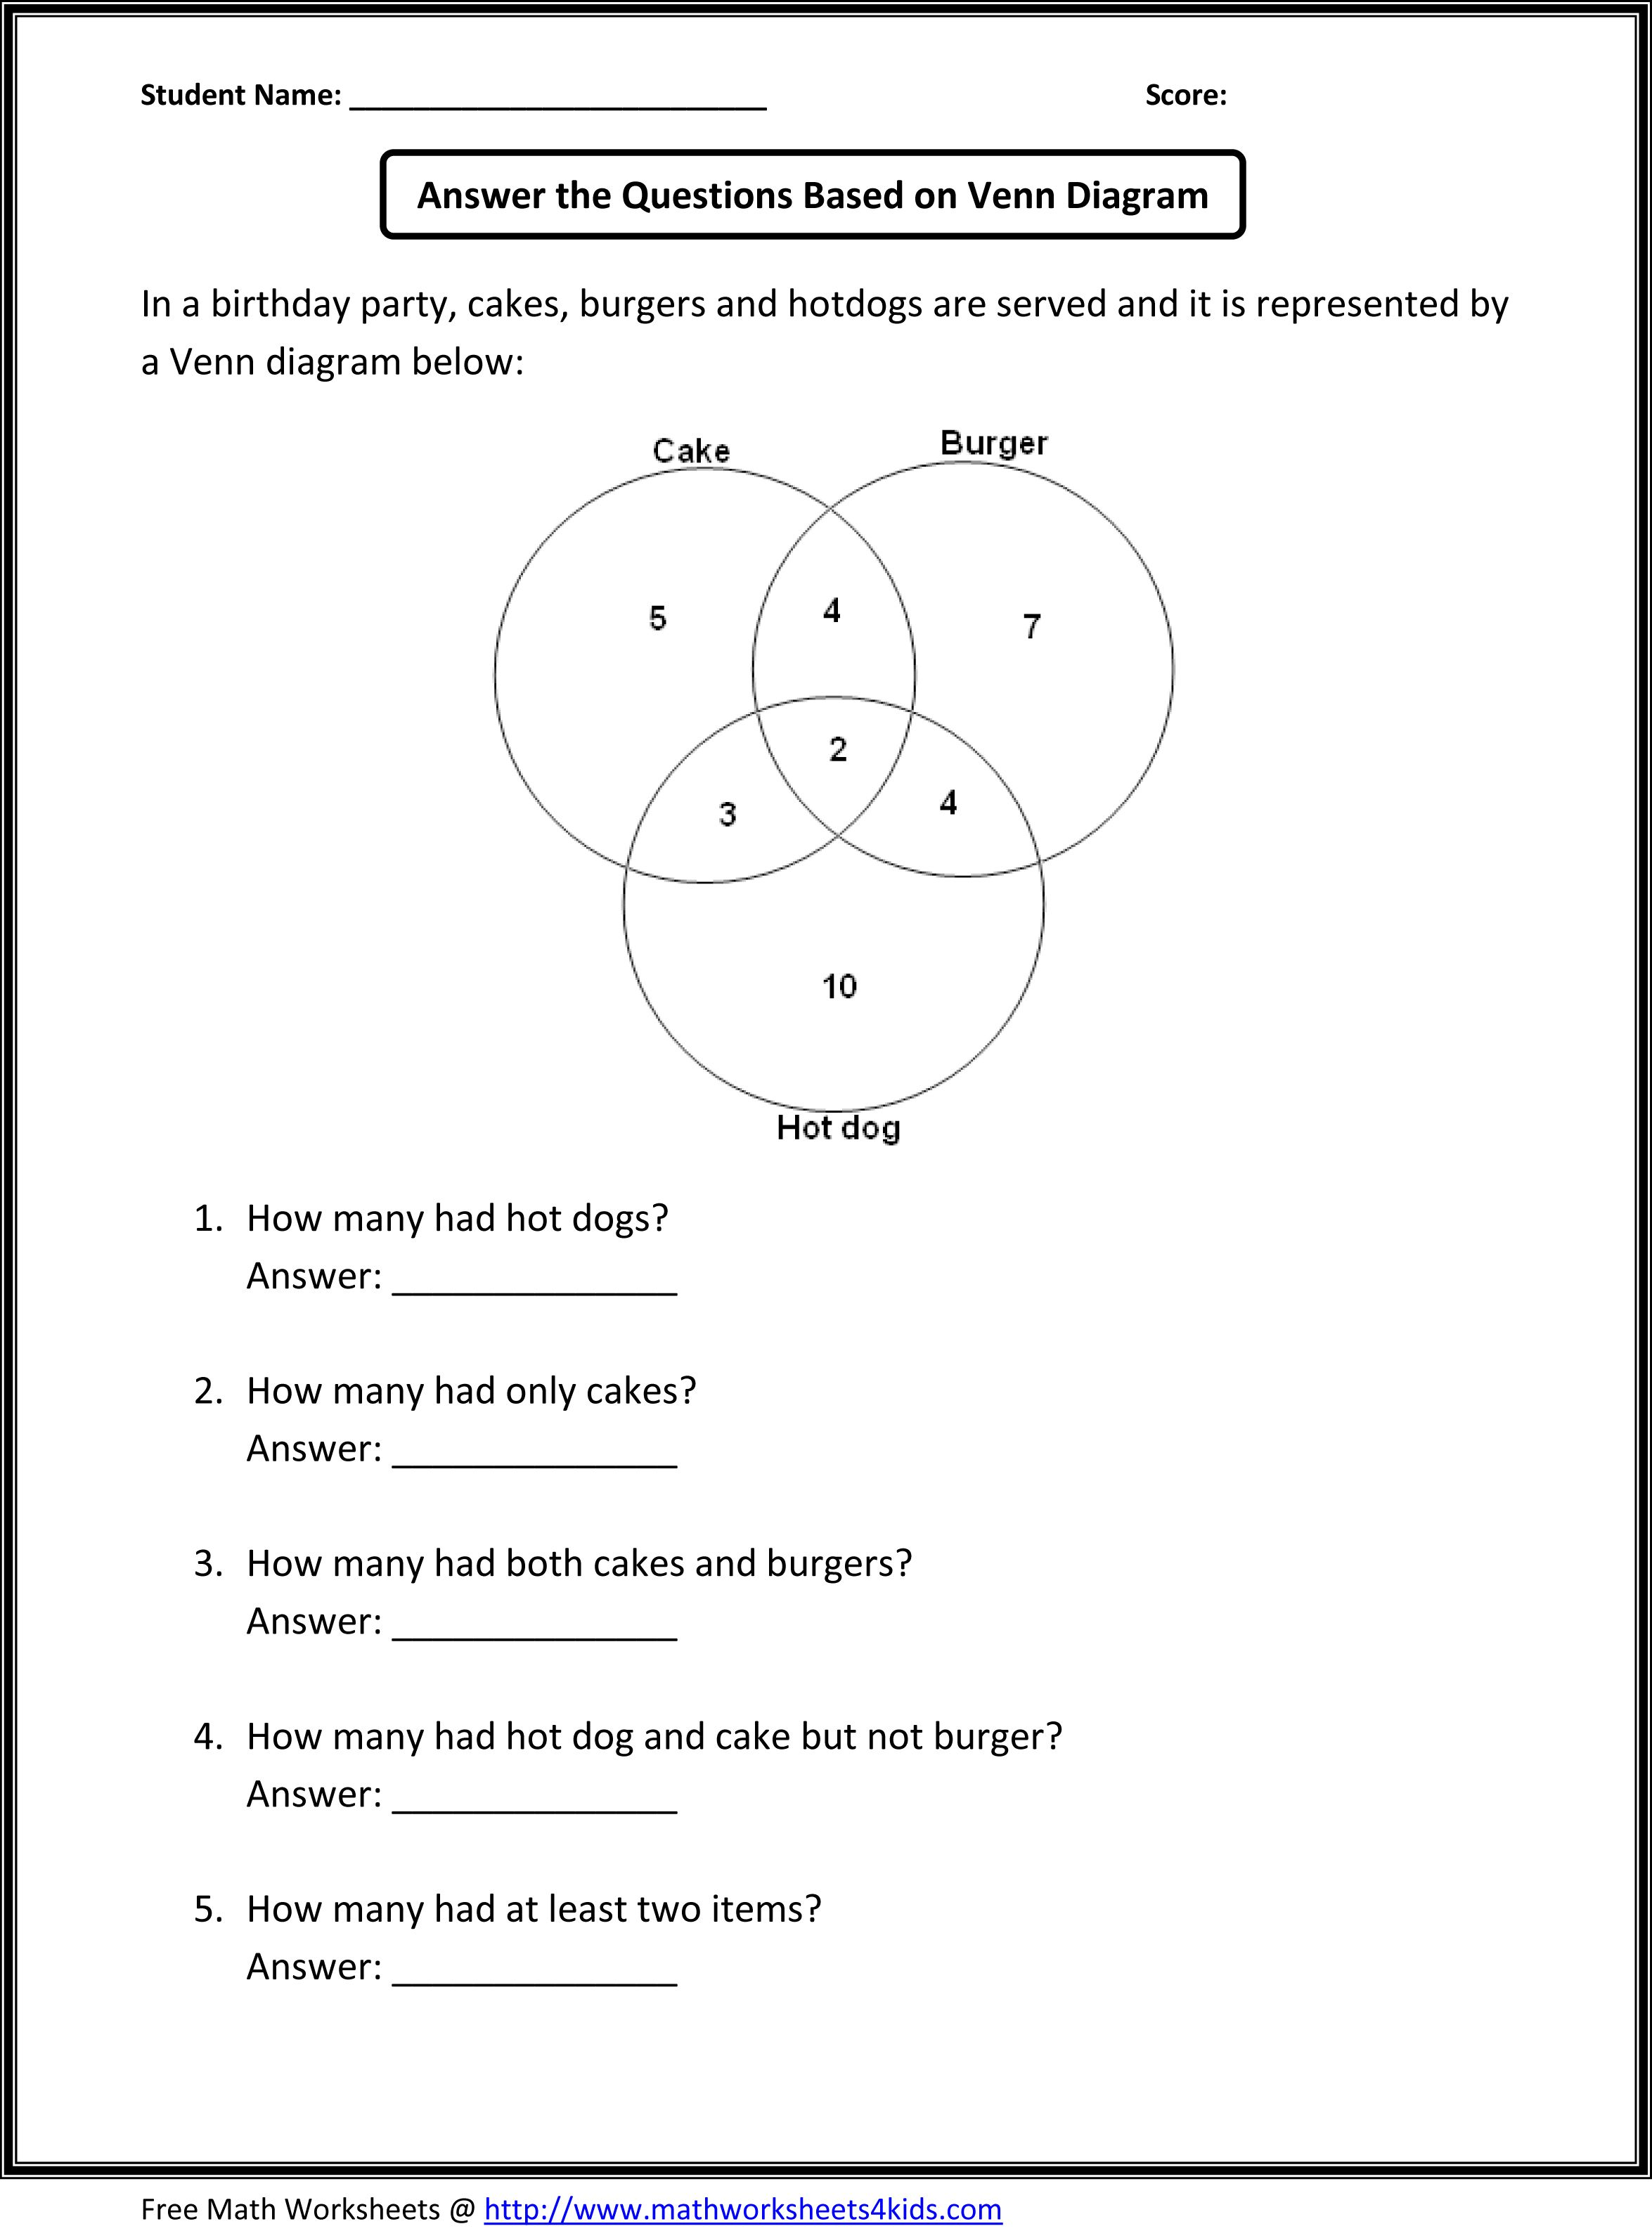 Worksheet Factors Word Problems venn diagram word problems school pinterest math problems